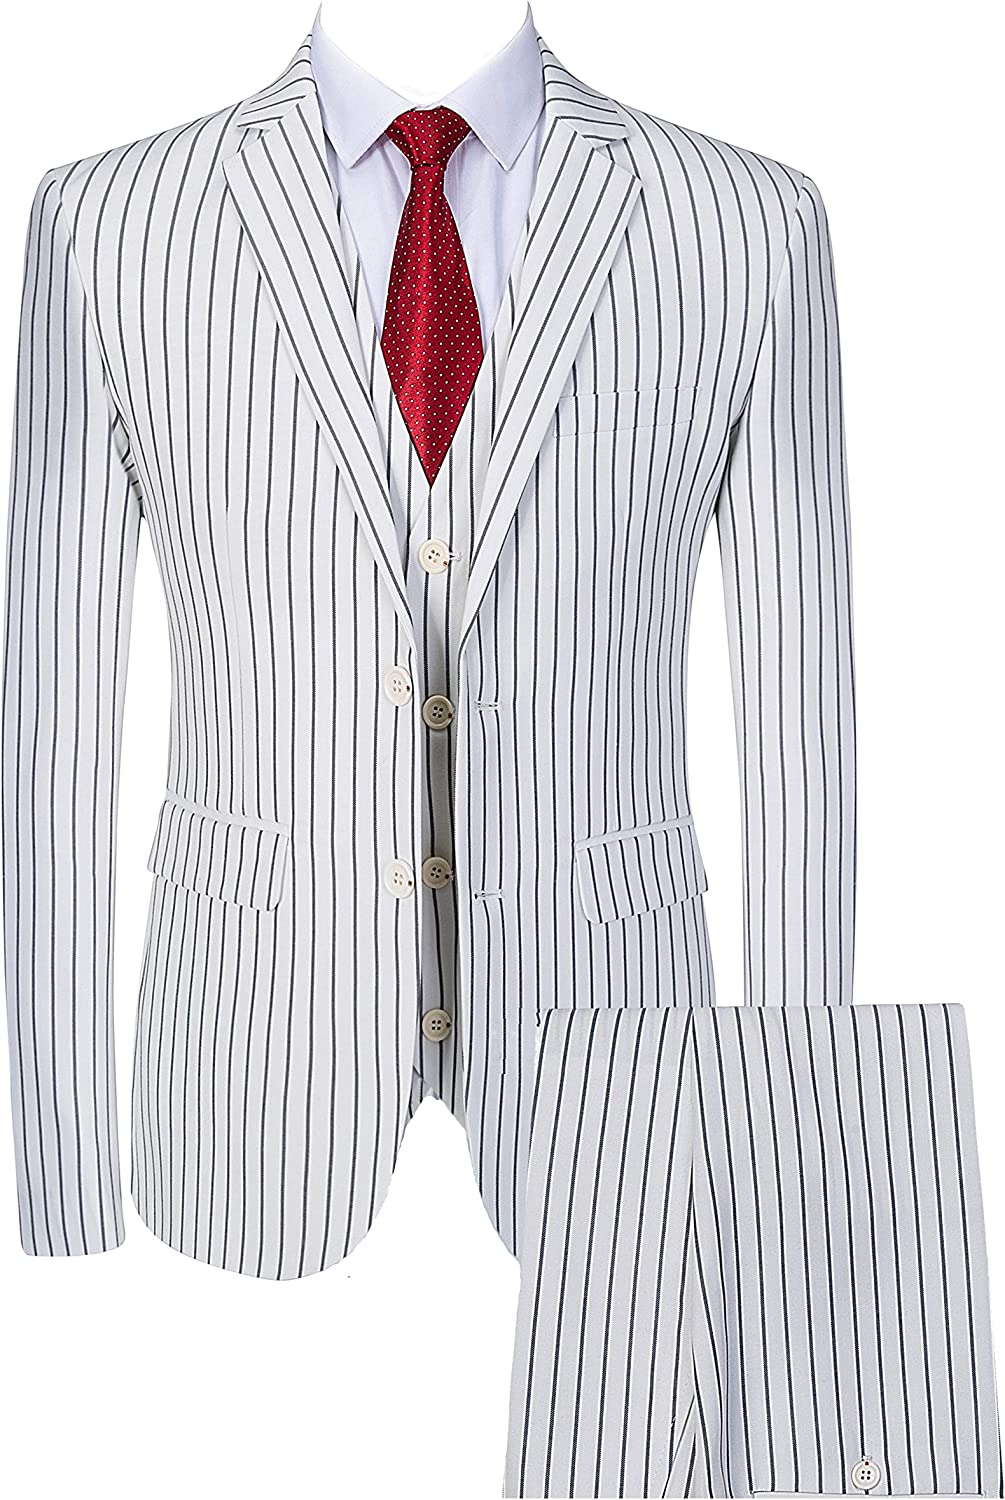 1960s Mens Suits | 70s Mens Disco Suits Mens 3 Piece Pinstripe Suit Slim Fit Casual Dress Suits Blazer + Vest + Pants $95.99 AT vintagedancer.com